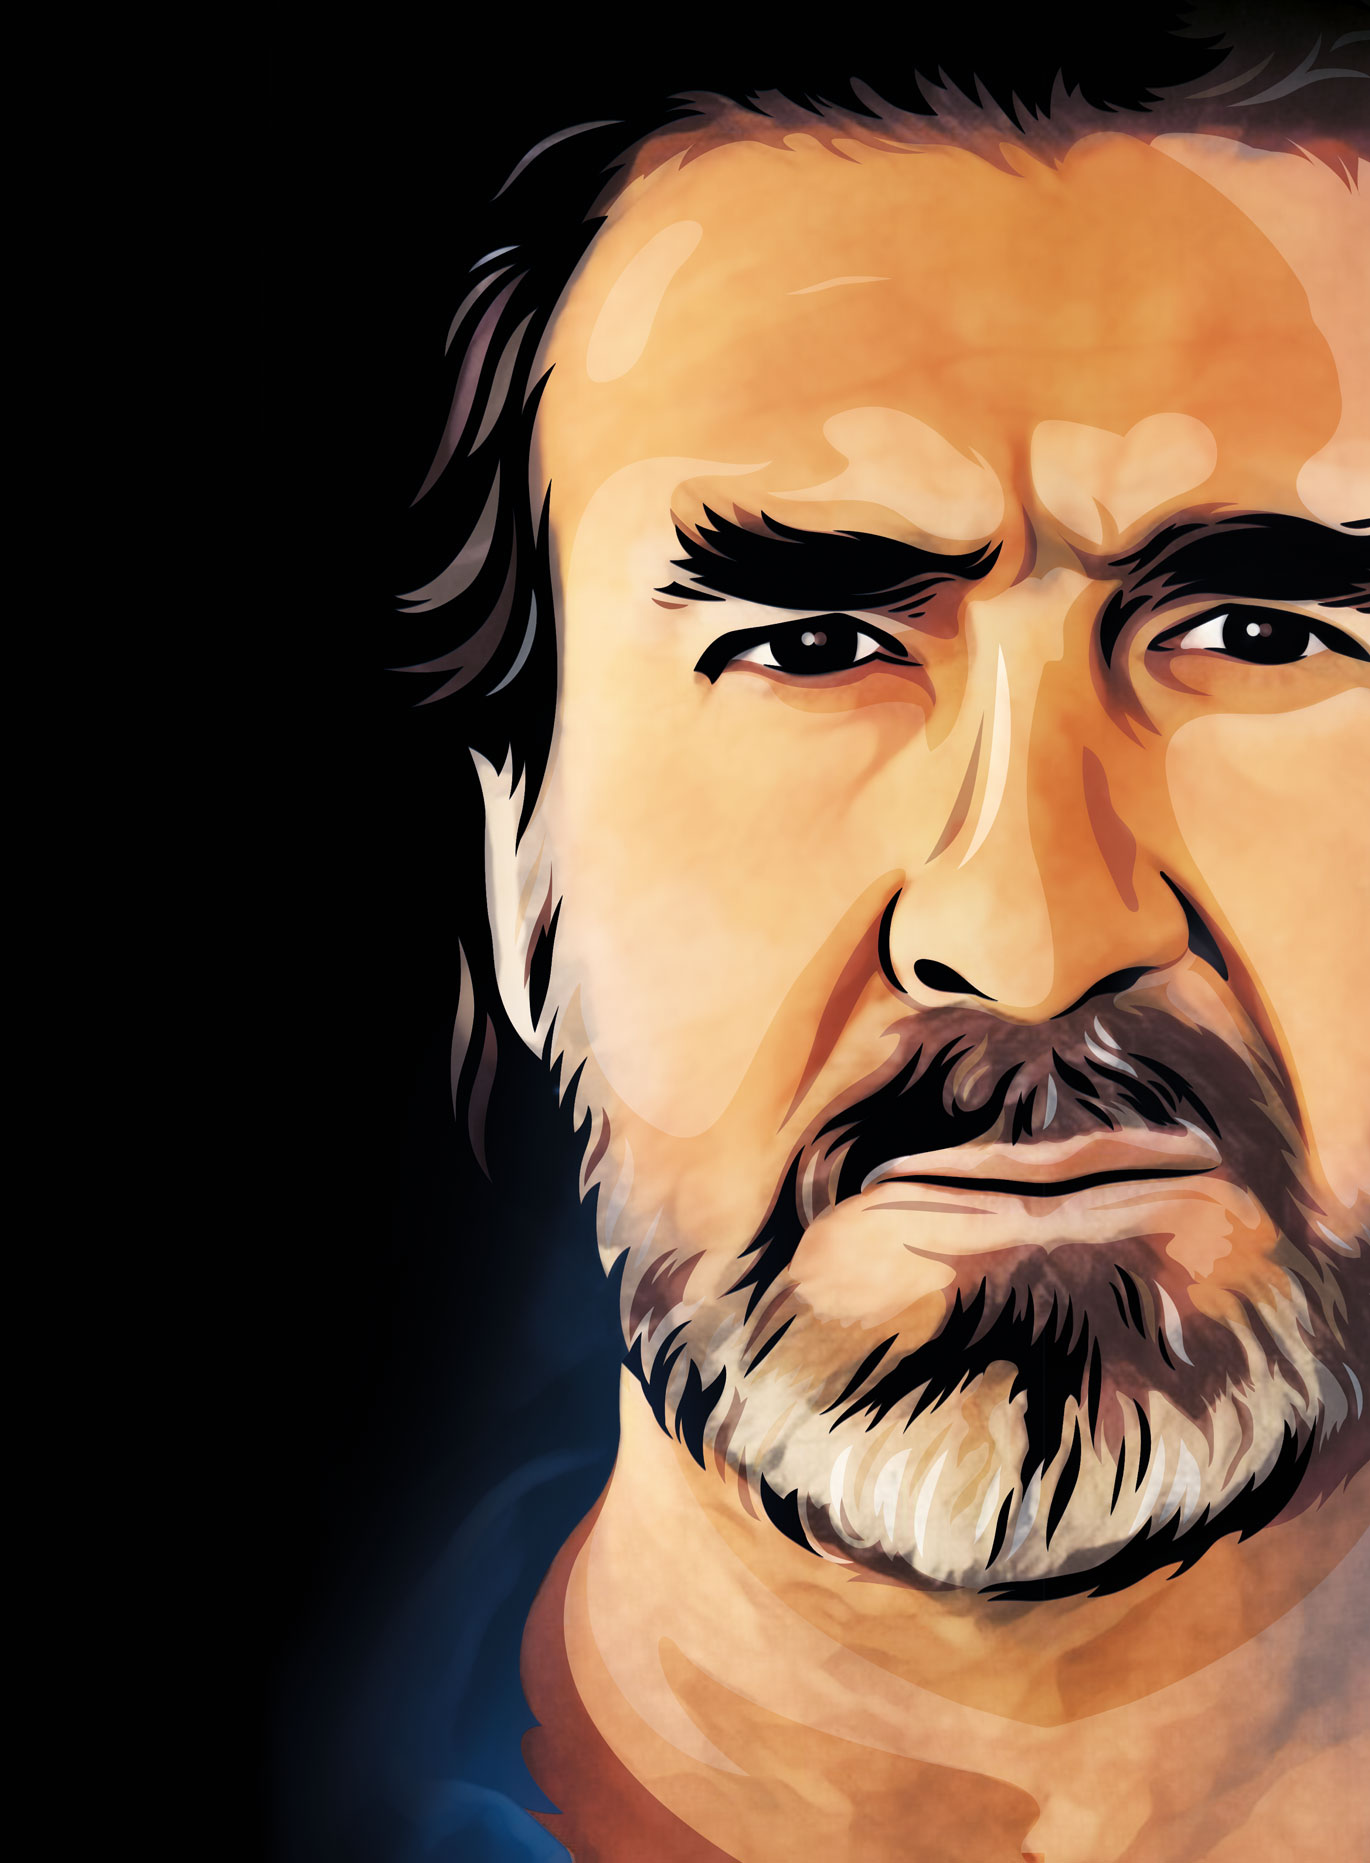 Eric Cantona Portrait Illustration